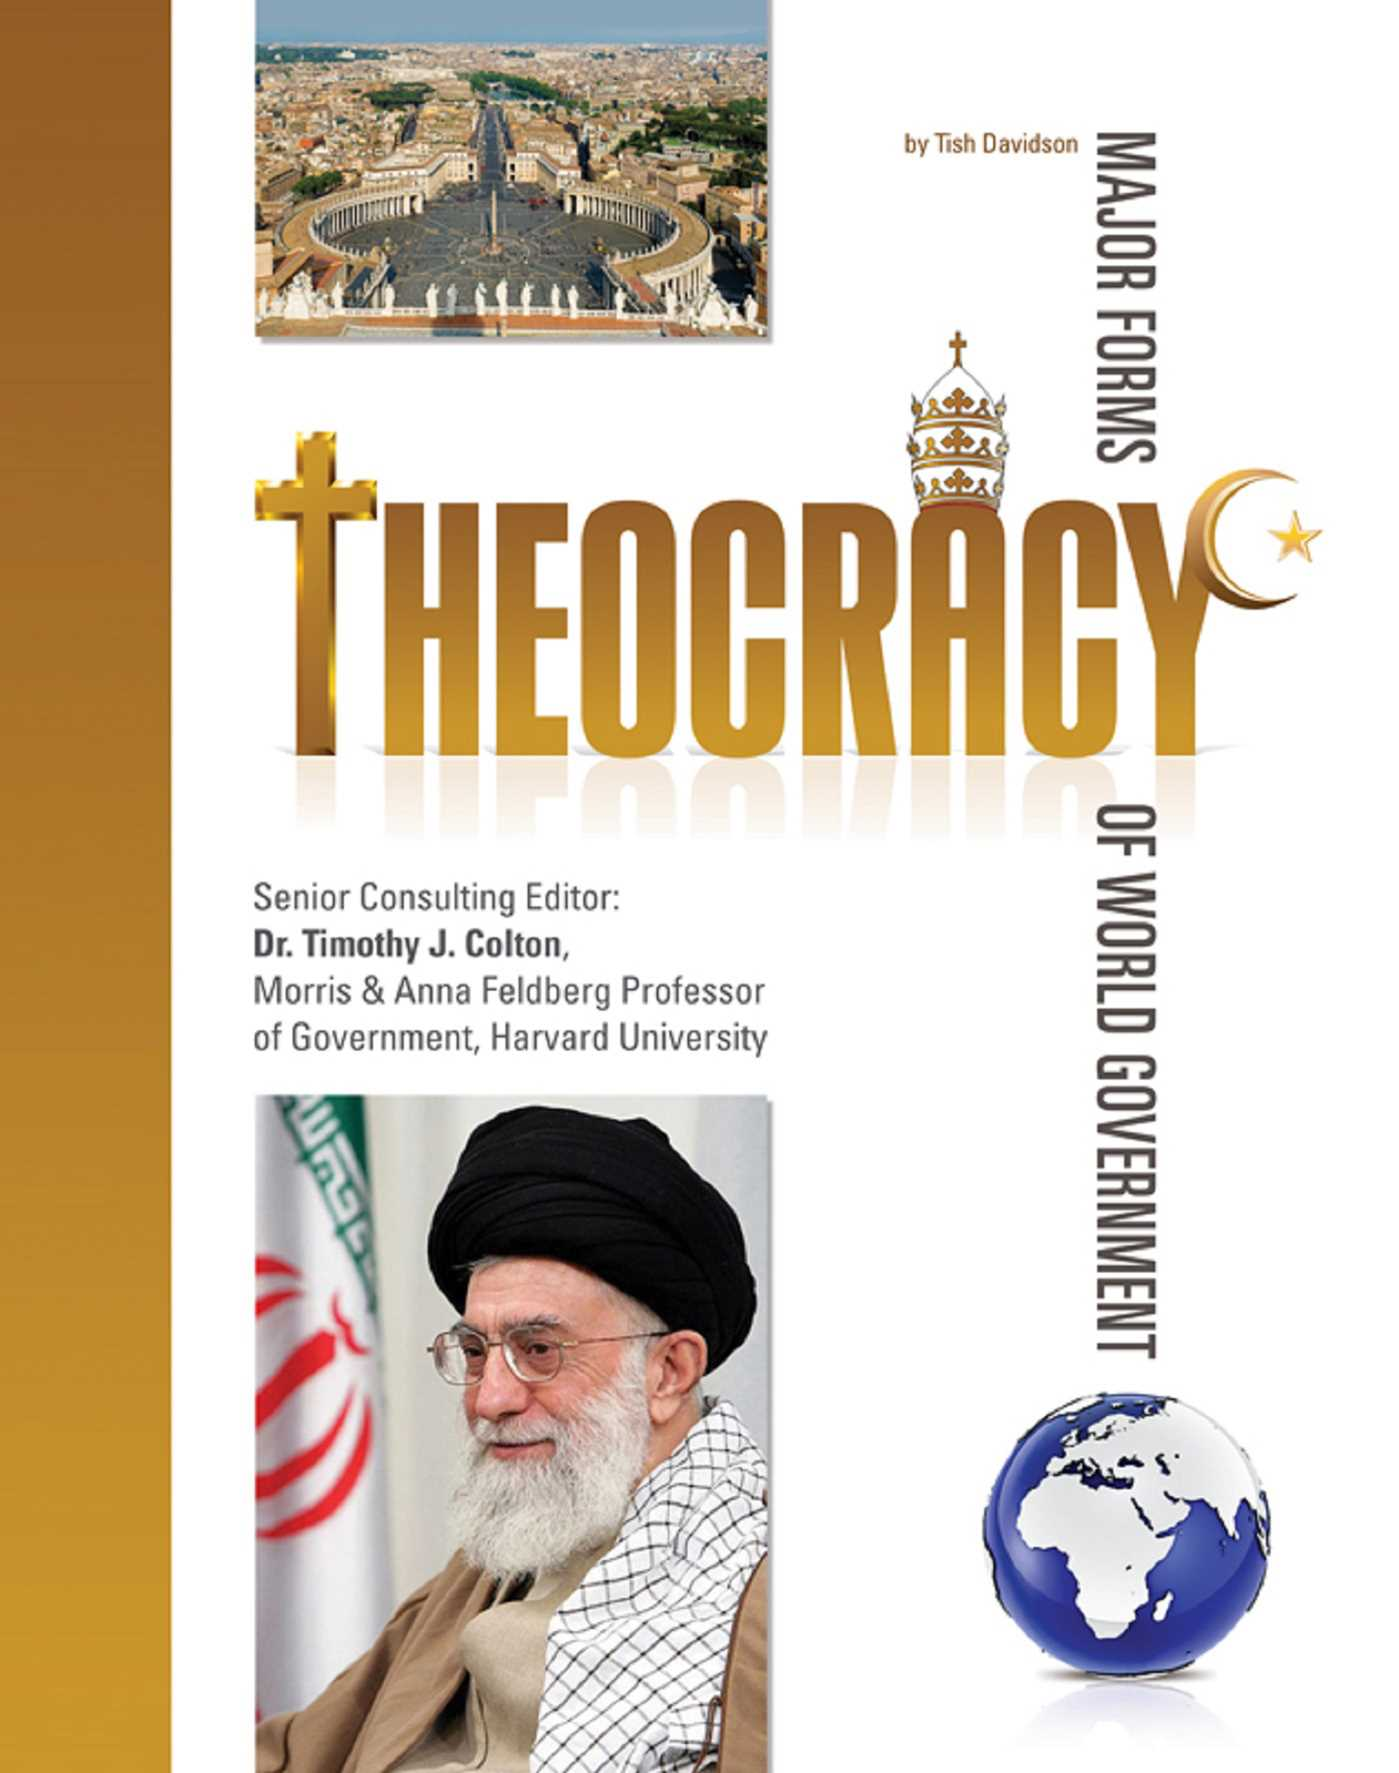 Theocracy eBook by Tish Davidson | Official Publisher Page ...